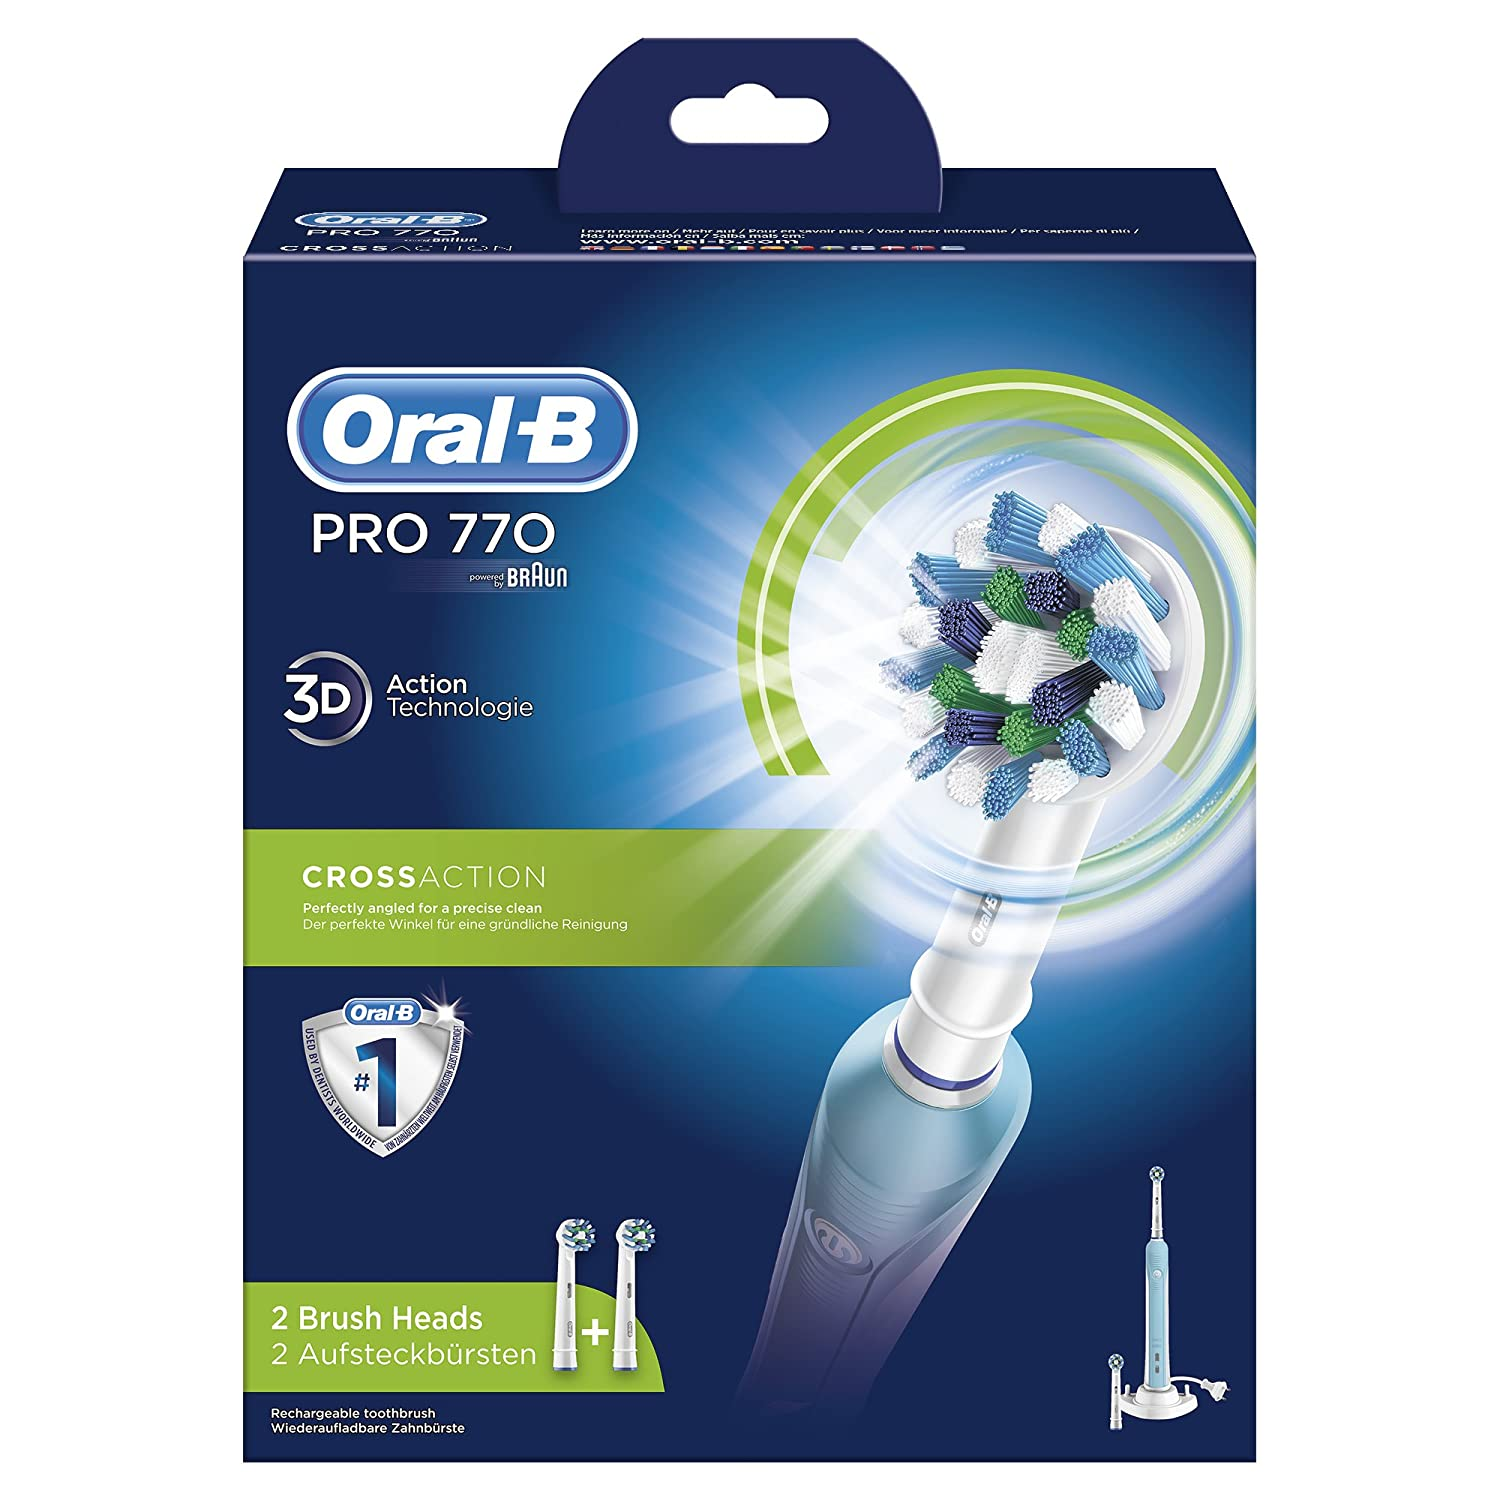 Oral-B PRO 770 CrossAction - Cepillo de dientes eléctrico (Batería, Integrado, CrossAction), con 2 cabezales incluidos: Amazon.es: Salud y cuidado personal